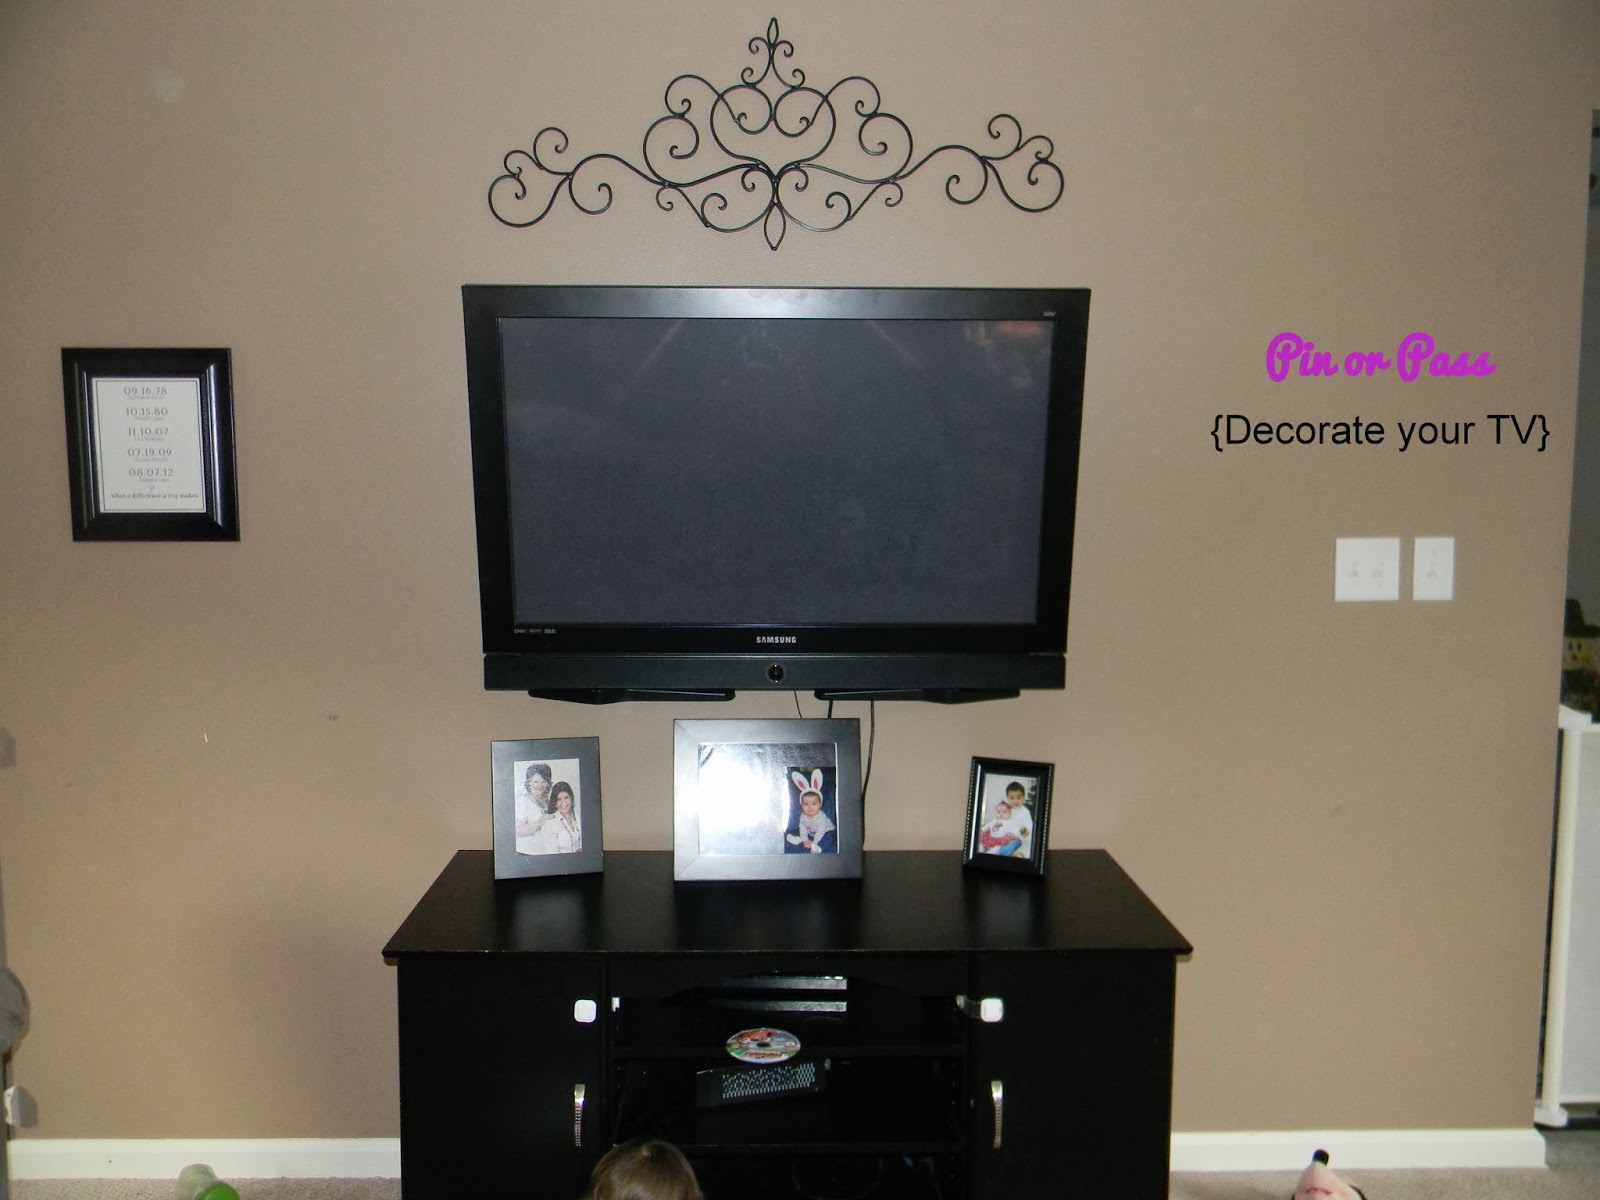 Hanging Art Above Tv Pin Or Pass Decorate Your Tv